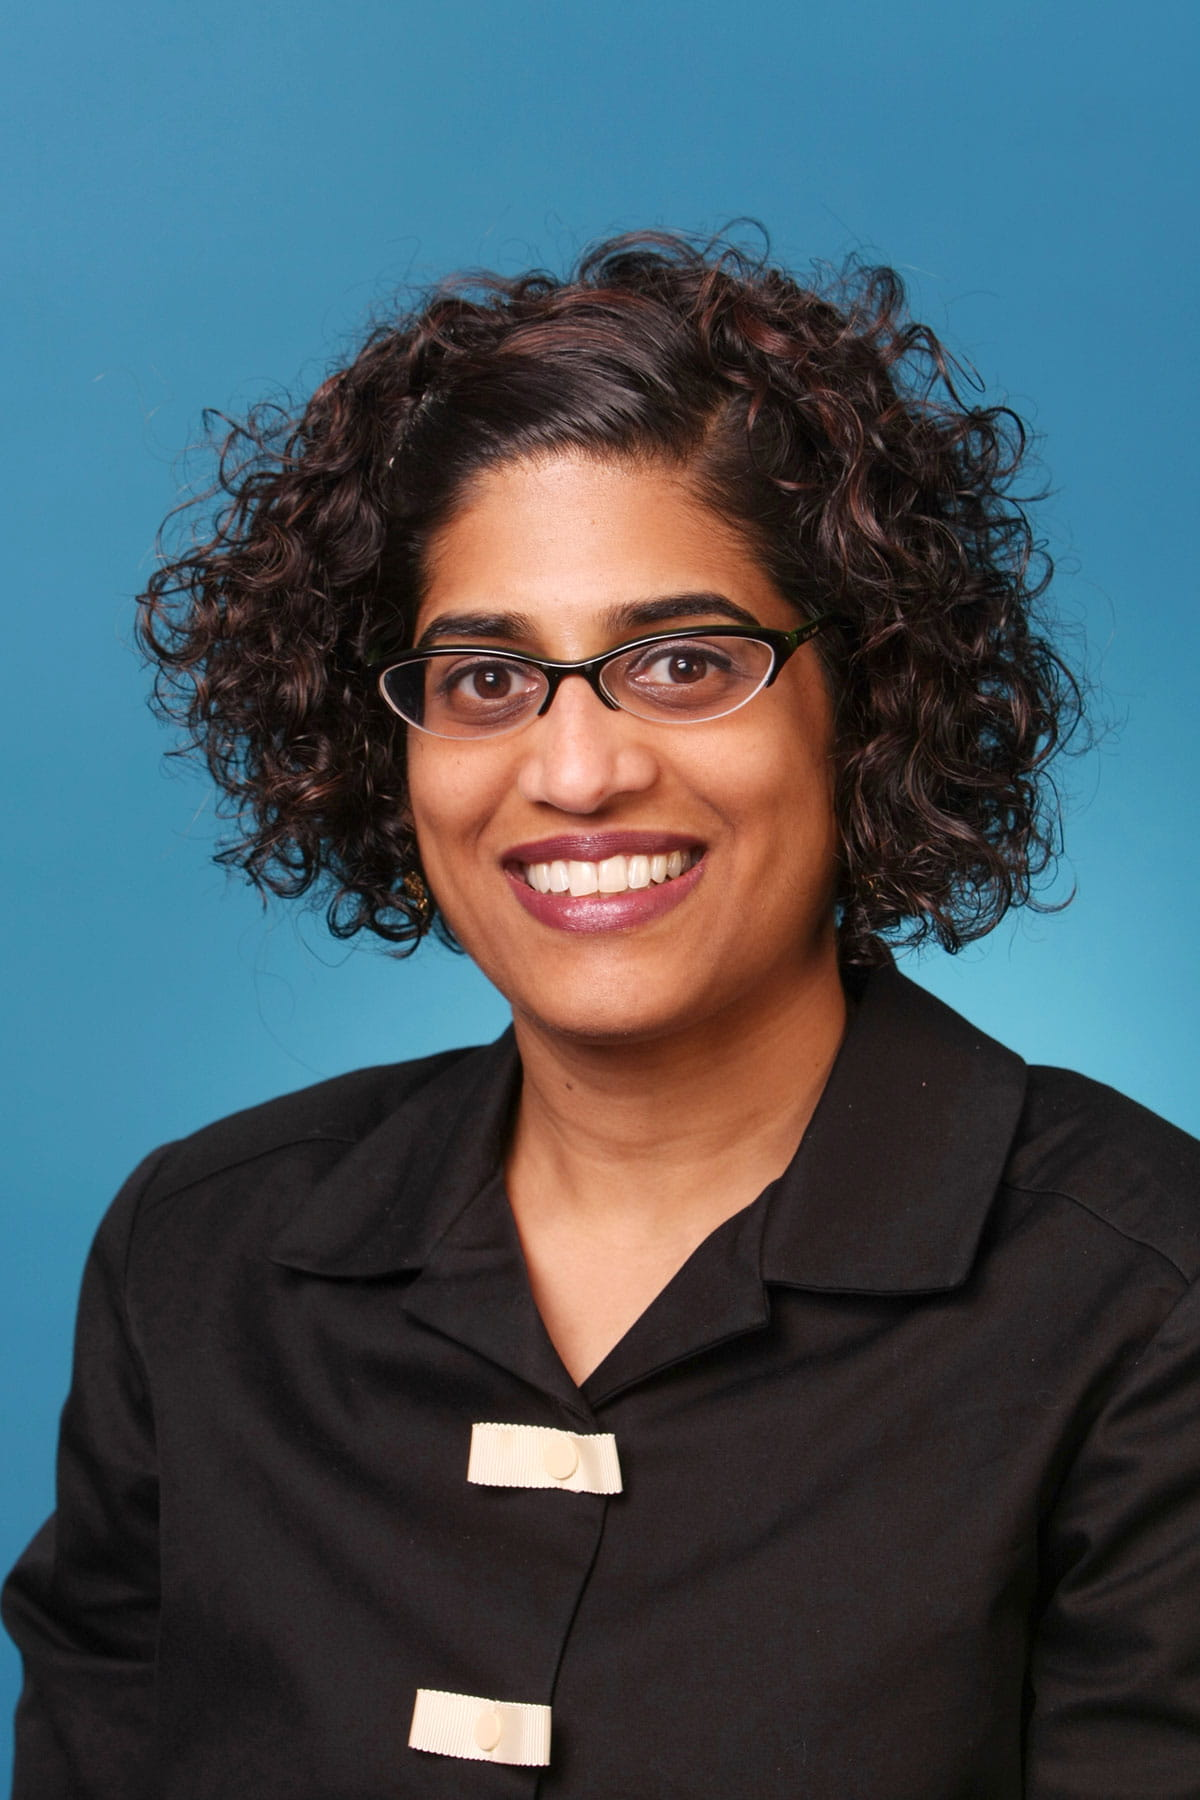 A photo of Sheila Chandran.